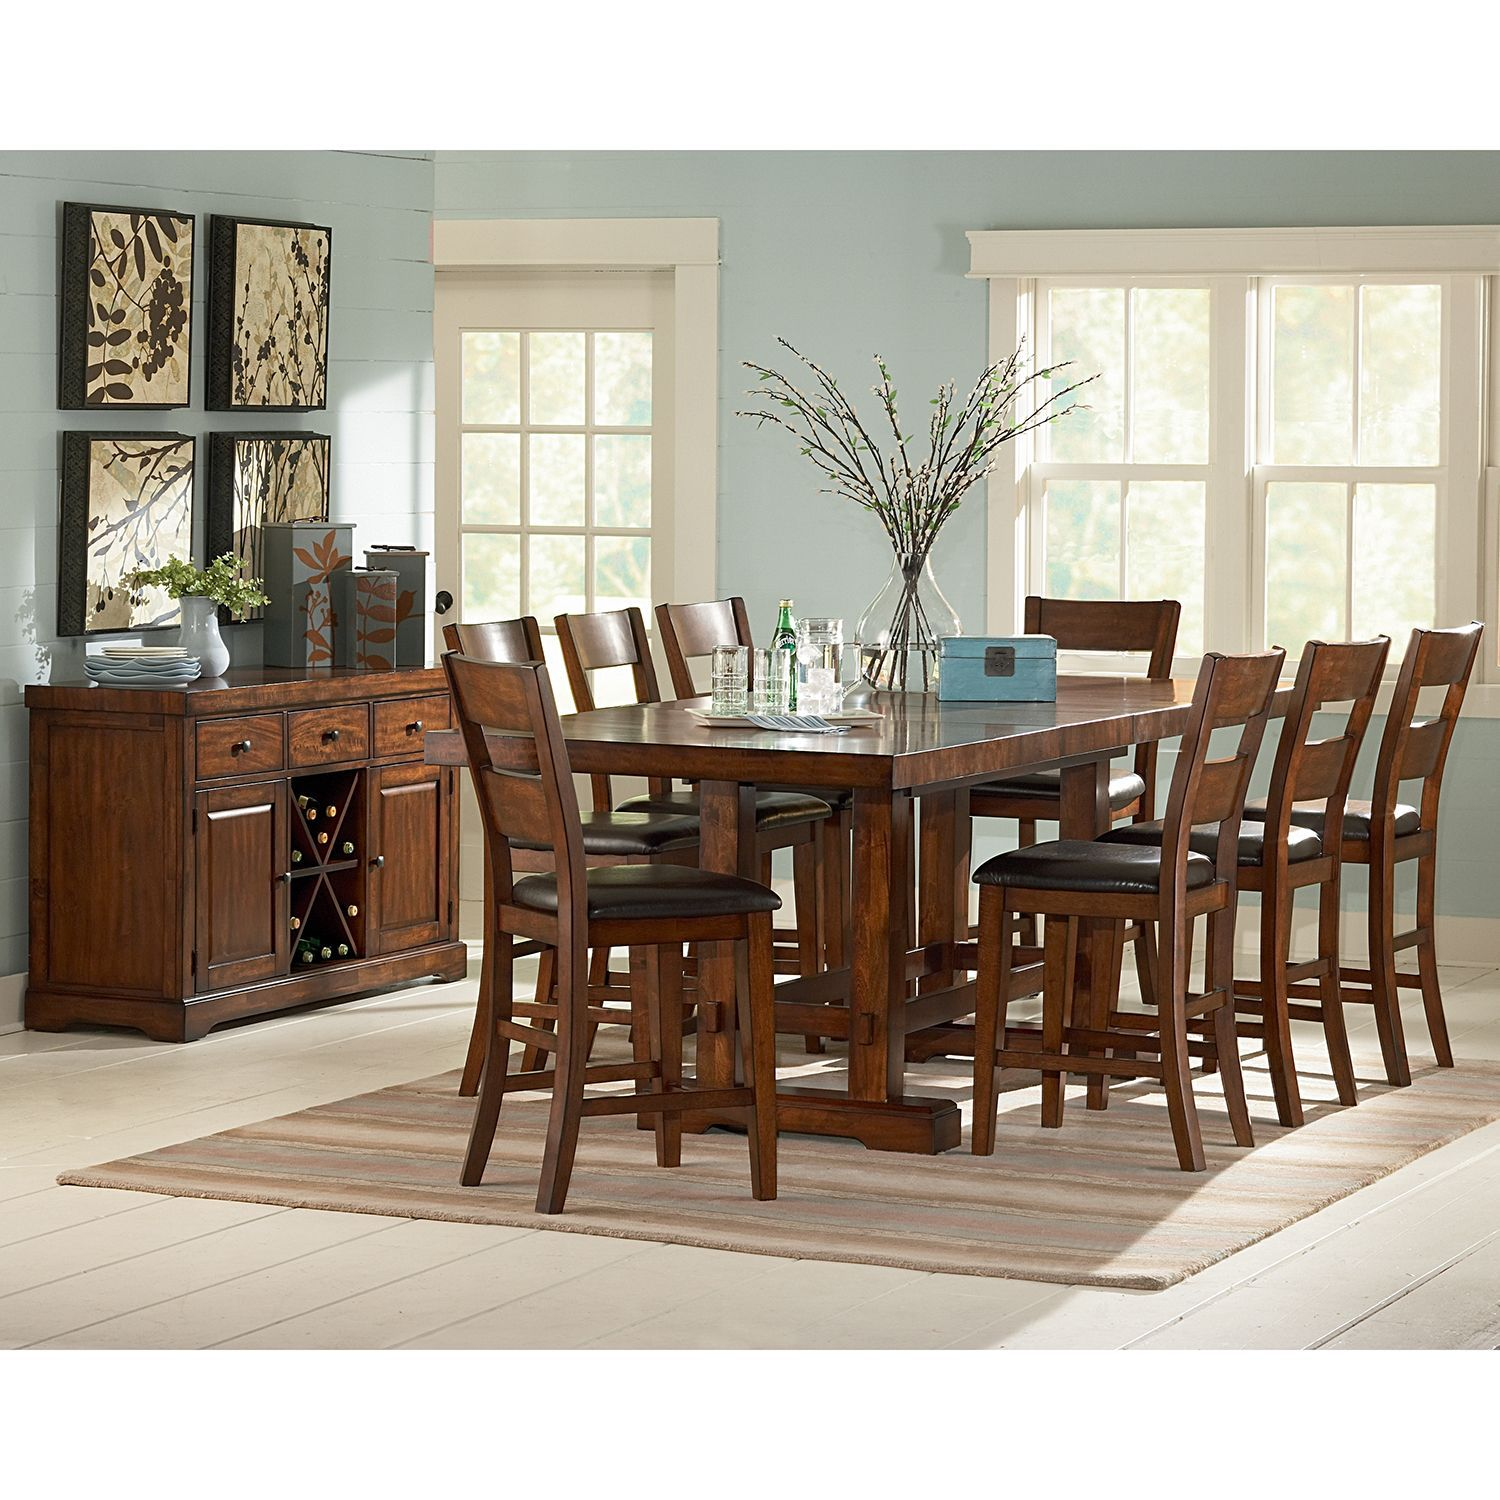 Tribecca home mackenzie 7 piece country white dining set - Zappa Counter Height Dining Set 10 Pc